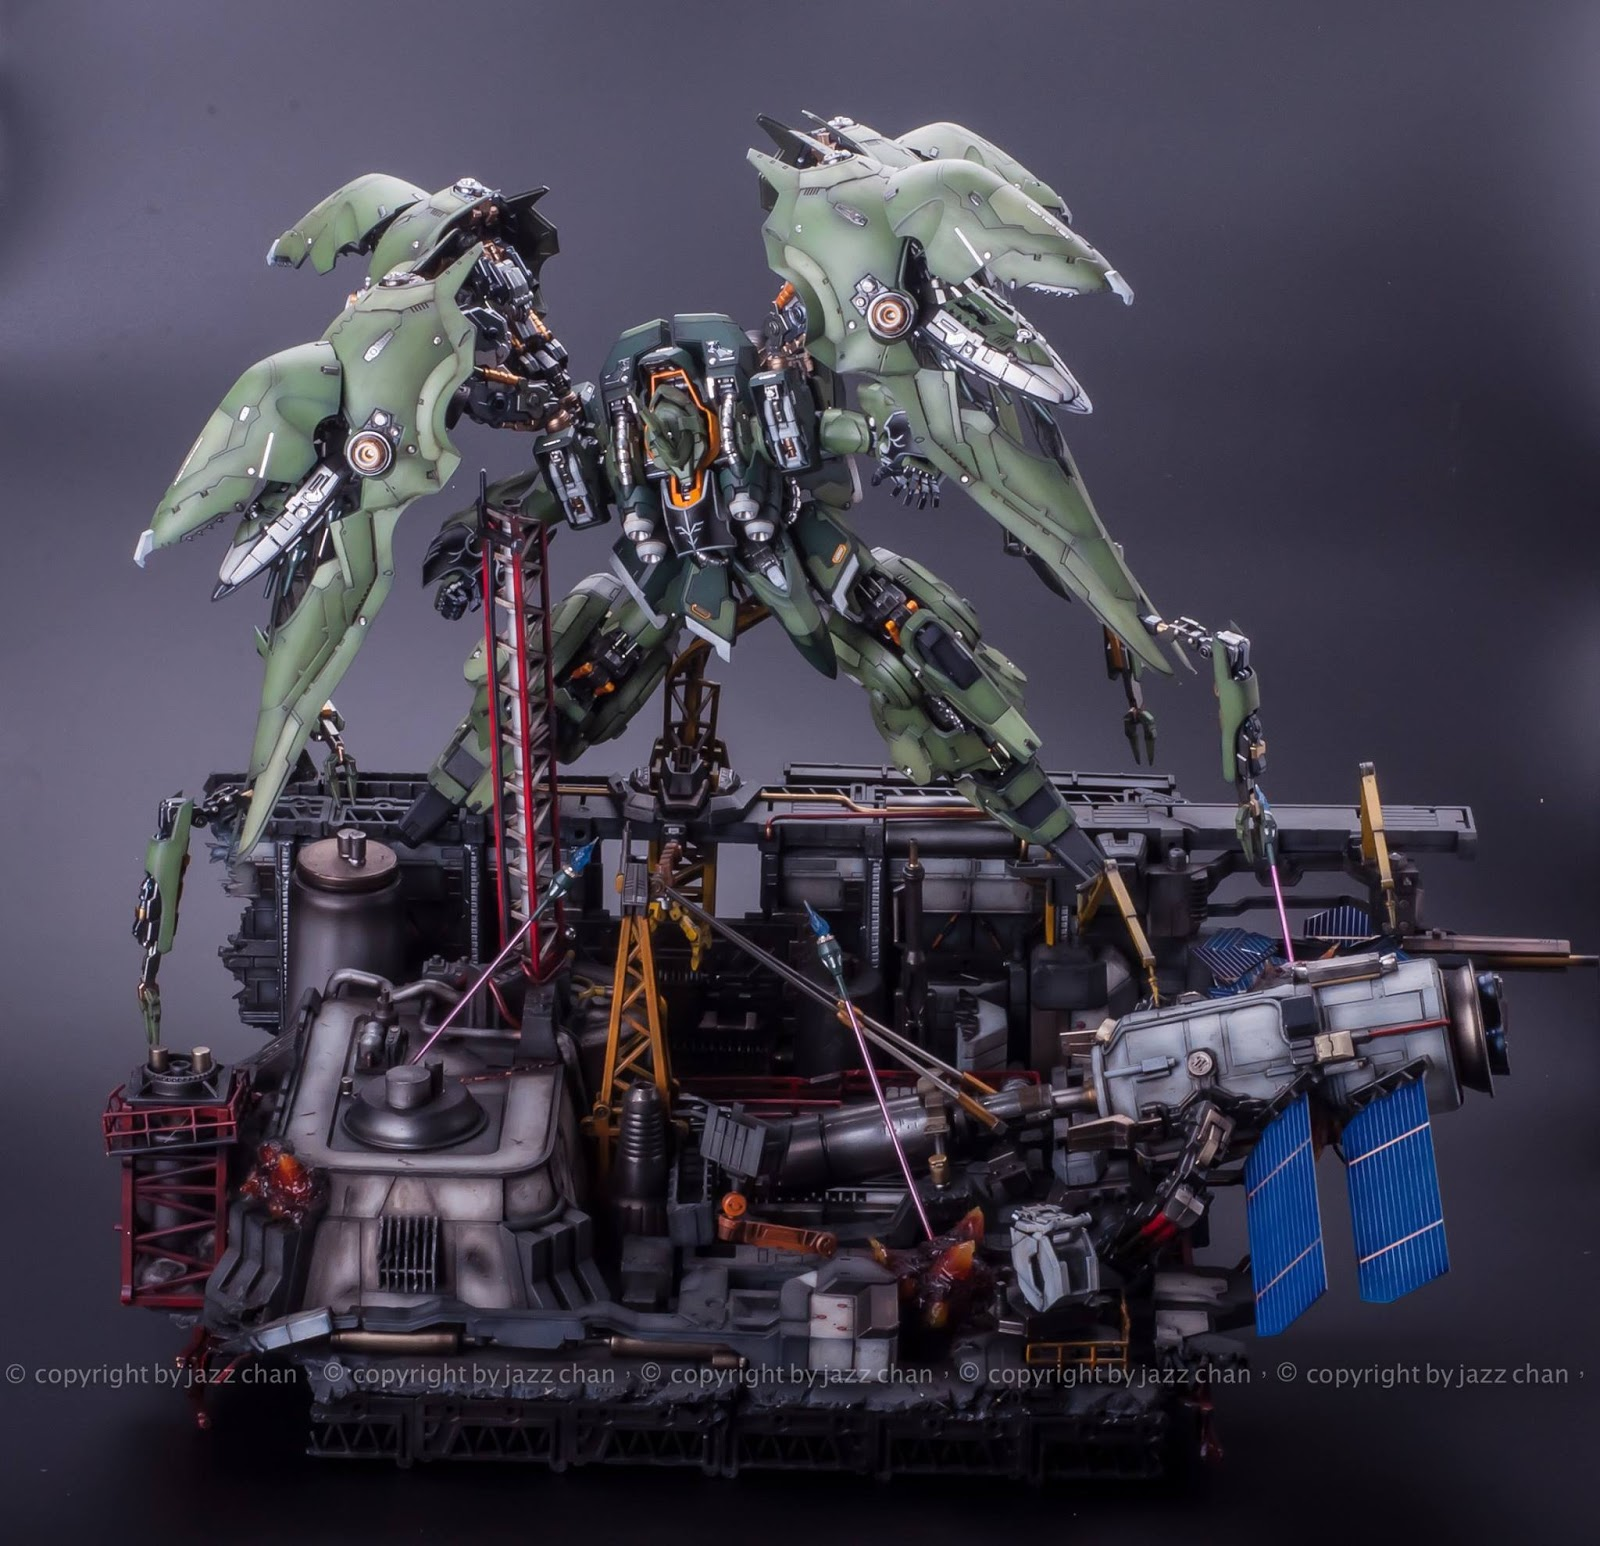 Custom Build: 1/100 NZ-666 Kshatriya + Diorama and LED - Gundam Kits